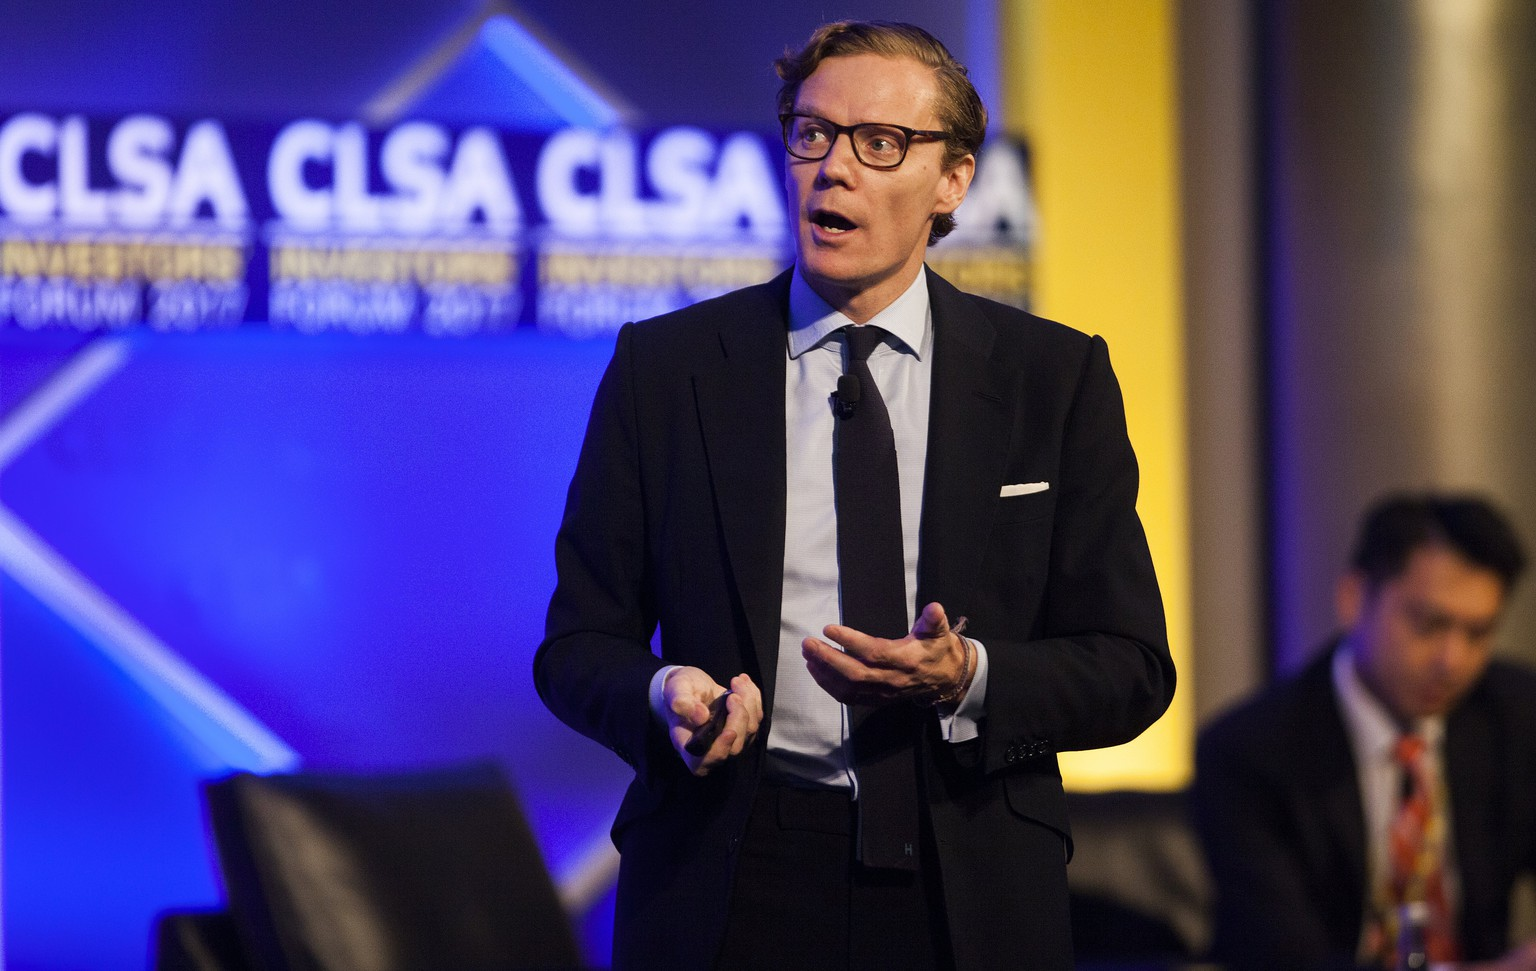 epa06201400 Alexander Nix, CEO of Cambridge Analytica, speaks at the Credit Lyonnais Securities Asia (CLSA) Investors Forum 2017 in Hong Kong, China, 13 September 2017. In 2016, the United States Republican Party hired data analytics and behavioral communications firm Cambridge Analytica to run Donald J. Trump's presidential election campaign using big data and psychological profiling to successfully target undecided American voters in swing states. By using data-driven communications, Cambridge Analytica has been credited with the success of Donald J. Trump's presidential campaign.  EPA/ALEX HOFFORD